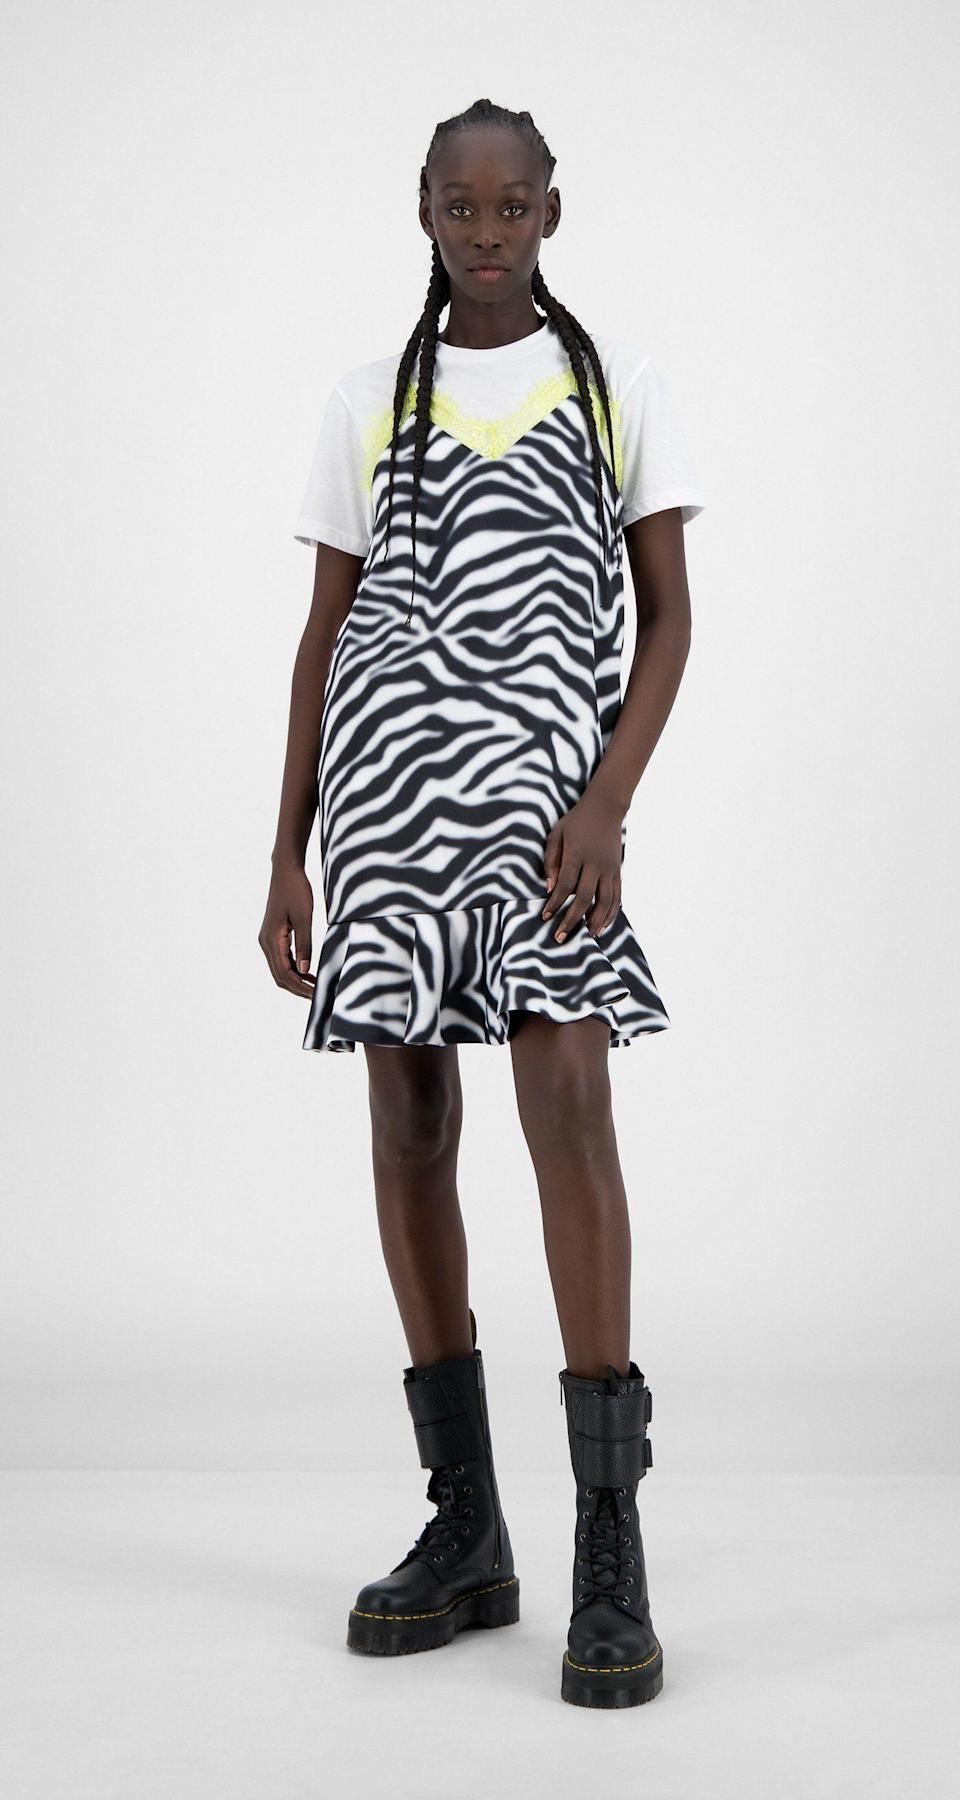 """<p><strong>Daily Paper</strong></p><p>dailypaperclothing.com</p><p><strong>103.00</strong></p><p><a href=""""https://www.dailypaperclothing.com/collections/women-all/products/zebra-sharp-green-heri-top?variant=31248388784262"""" rel=""""nofollow noopener"""" target=""""_blank"""" data-ylk=""""slk:Shop Now"""" class=""""link rapid-noclick-resp"""">Shop Now</a></p><p>A zebra-printed mini over a simple white tee is *chef's kiss*, but add some edgy (and rain-proof) combat boots to it and you're solid. </p>"""